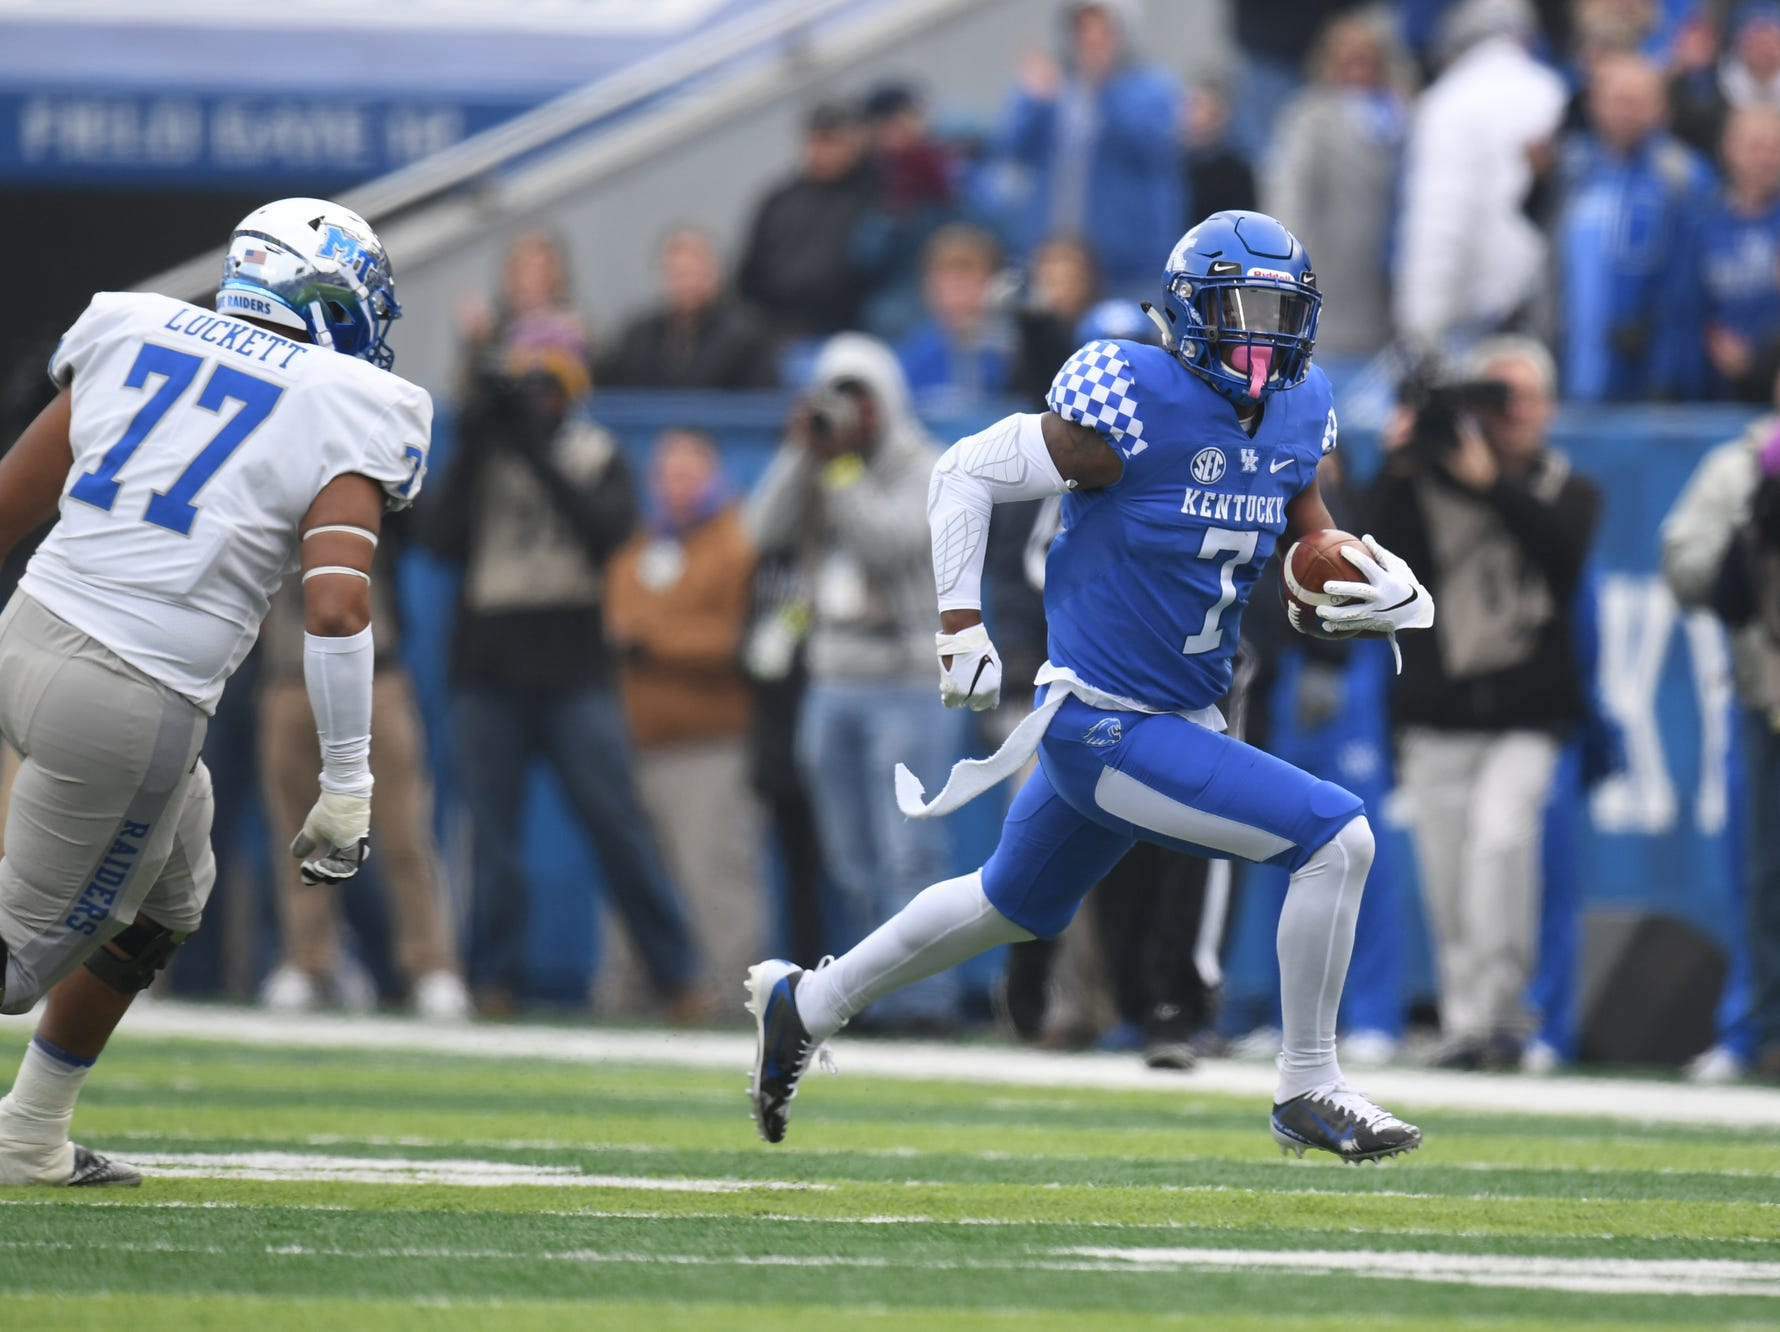 UK SS Mike Edwards runs with the ball after intercepting the pass during the University of Kentucky football game against Middle Tennessee at Kroger Field in Lexington, Kentucky on Saturday, November 17, 2018.